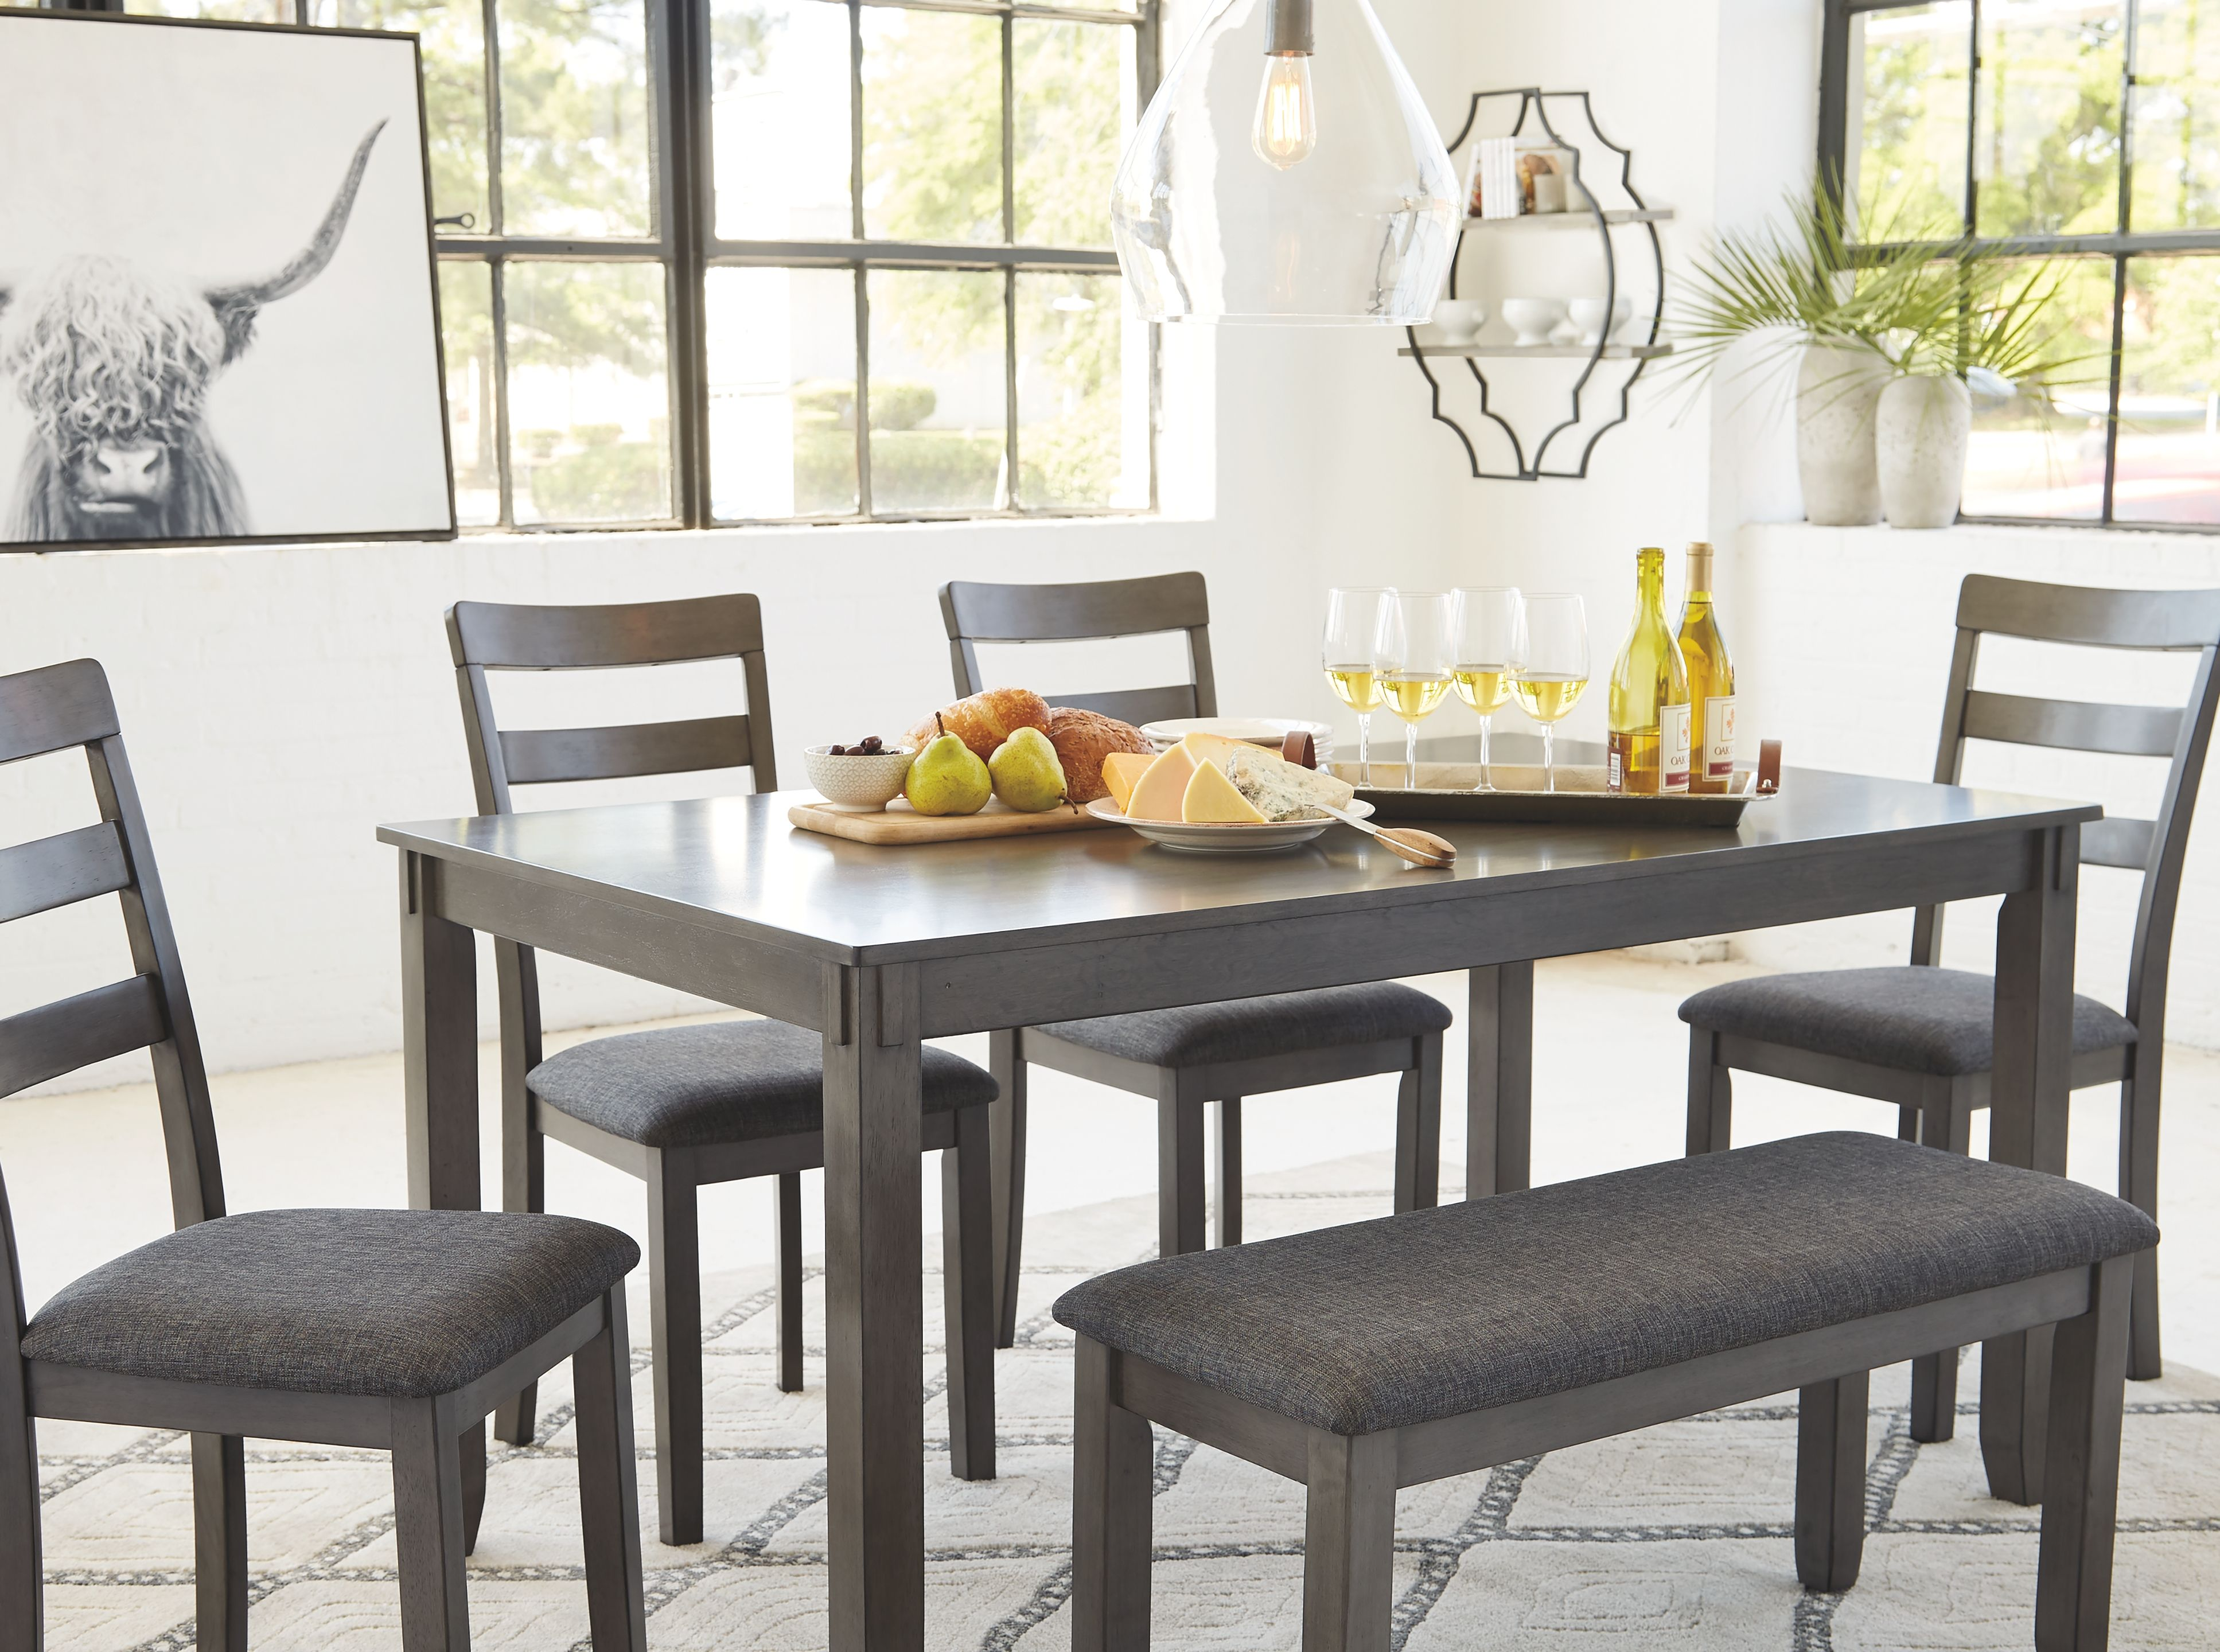 Bridson Dining Table And Chairs With Bench Set Of 6 Ashley Furniture Homestore Dining Room Table Dining Table Chairs Dining Room Small